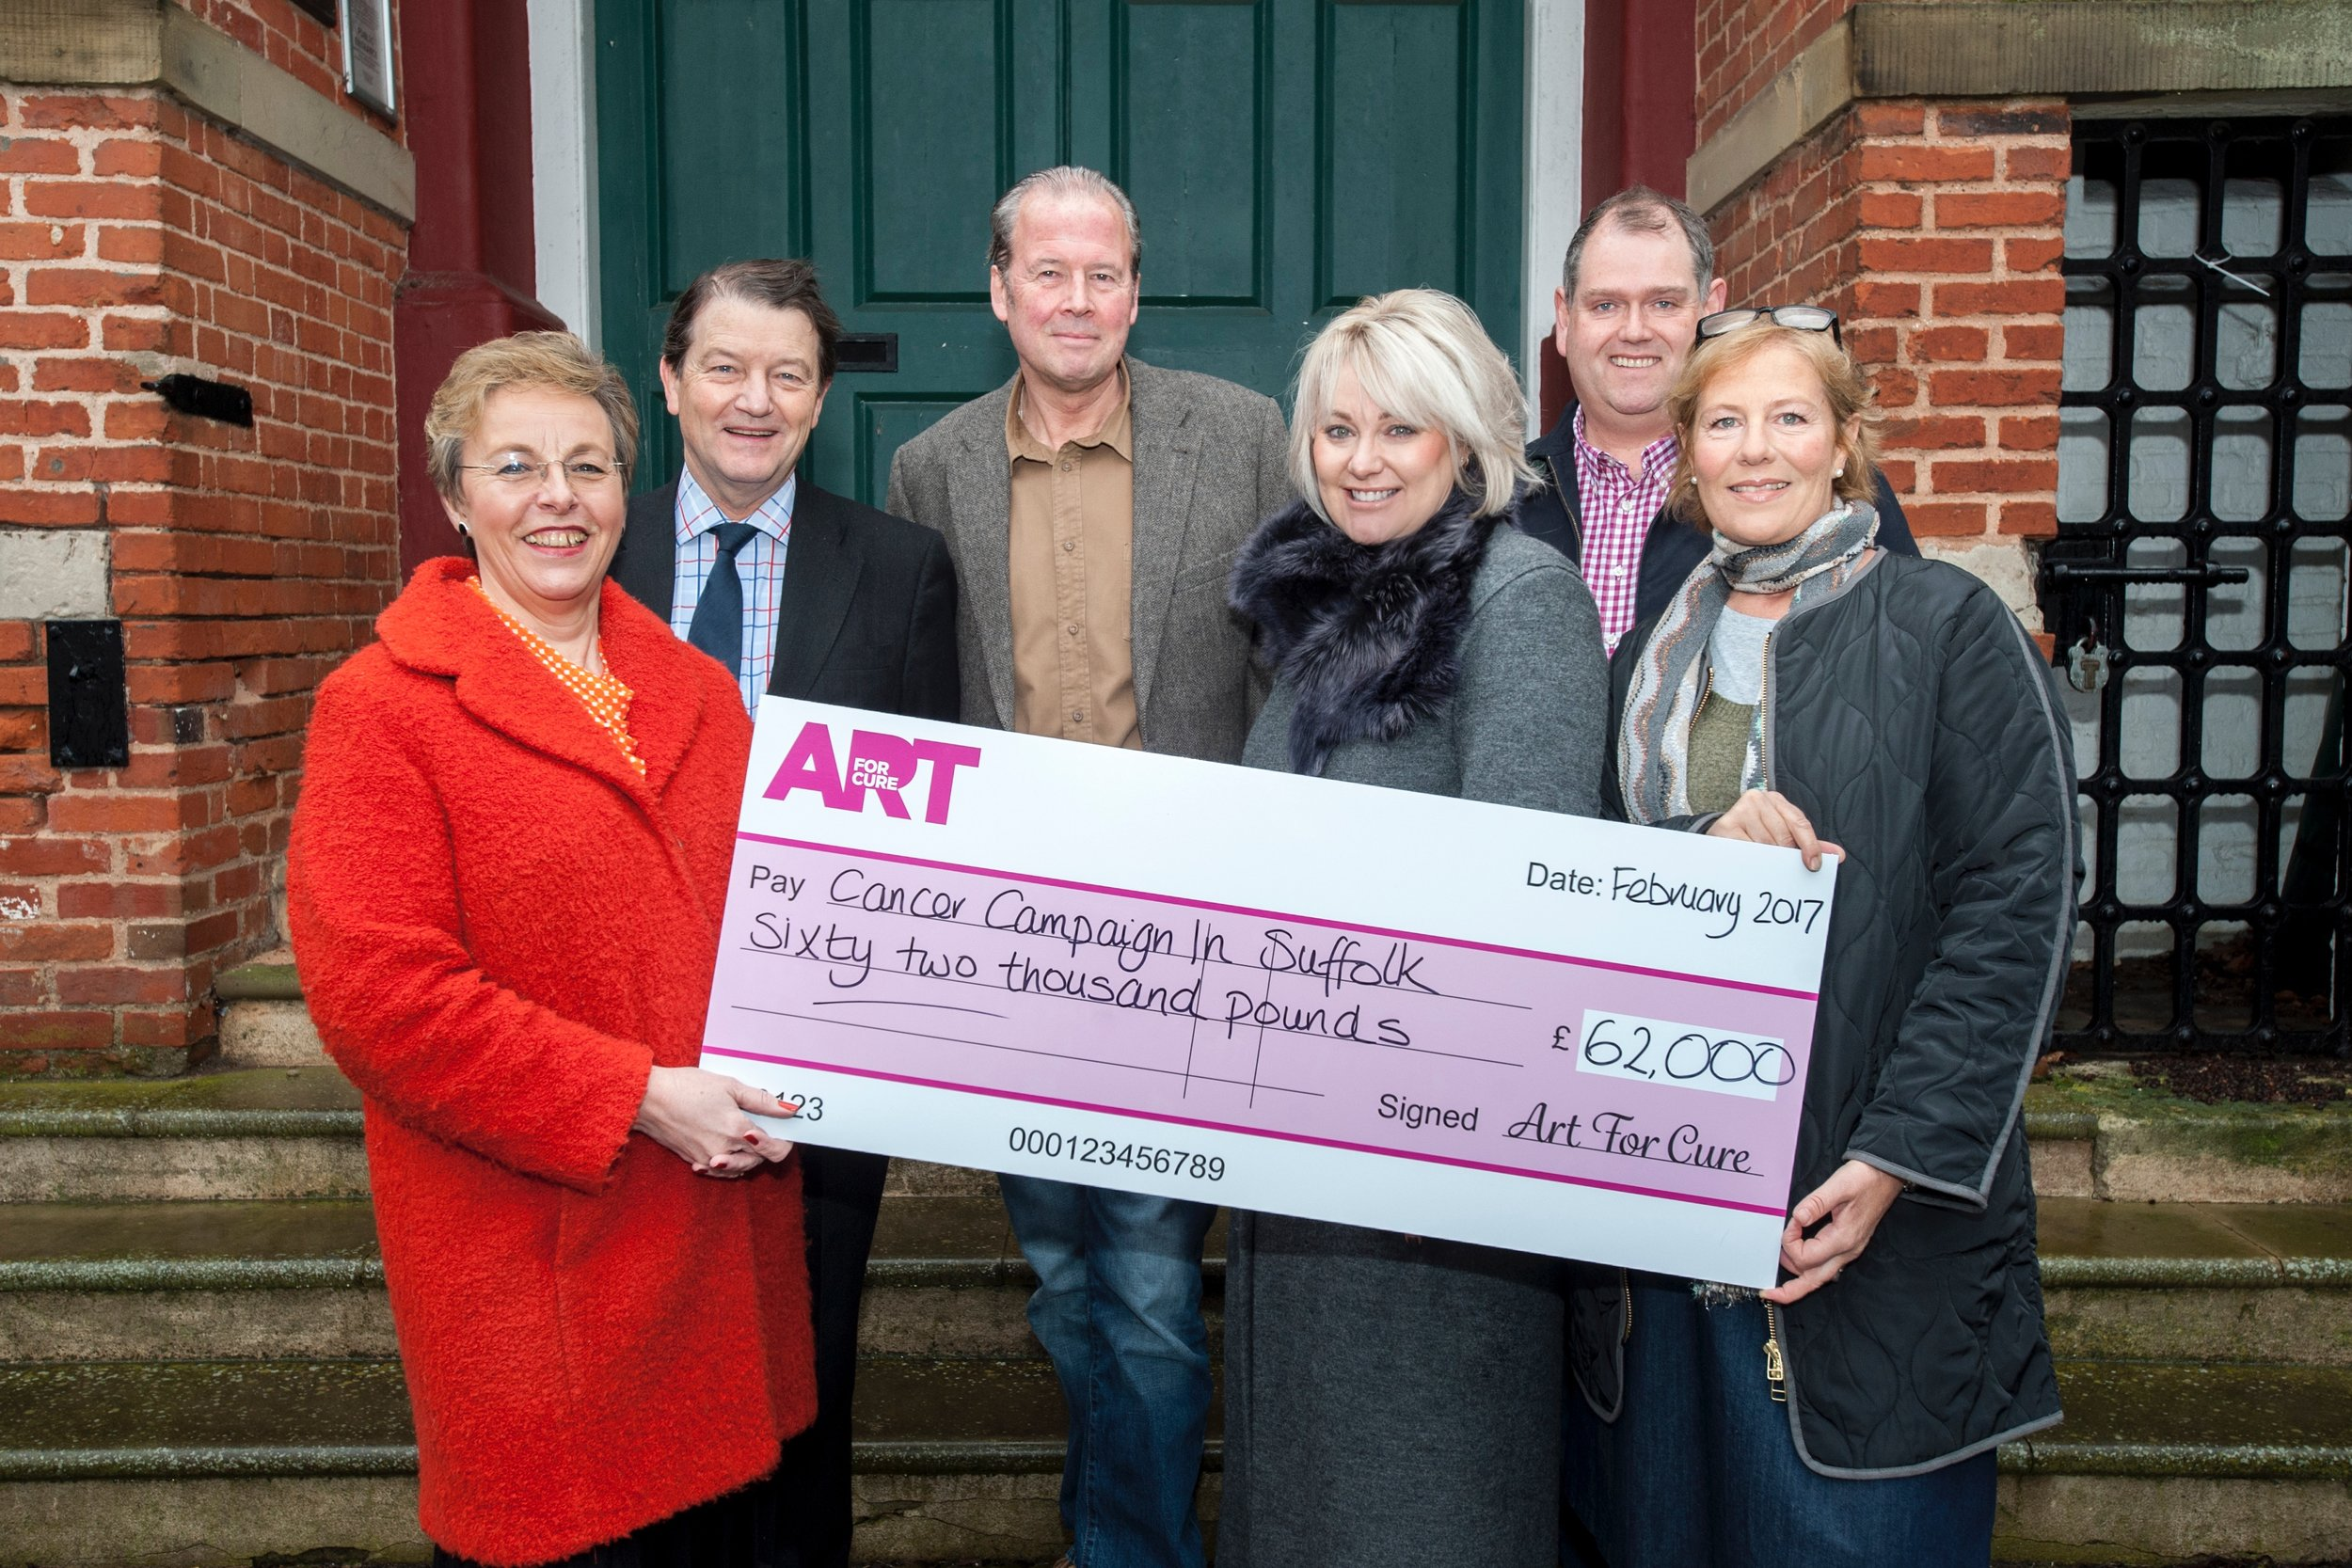 From left to right: Karen Hare, CEO CCiS, Tim Cutler and Jonny Ripman , Trustees of CCiS, Emma Lloyd, Adrian Melrose and Belinda Gray, all Directors of Art For Cure